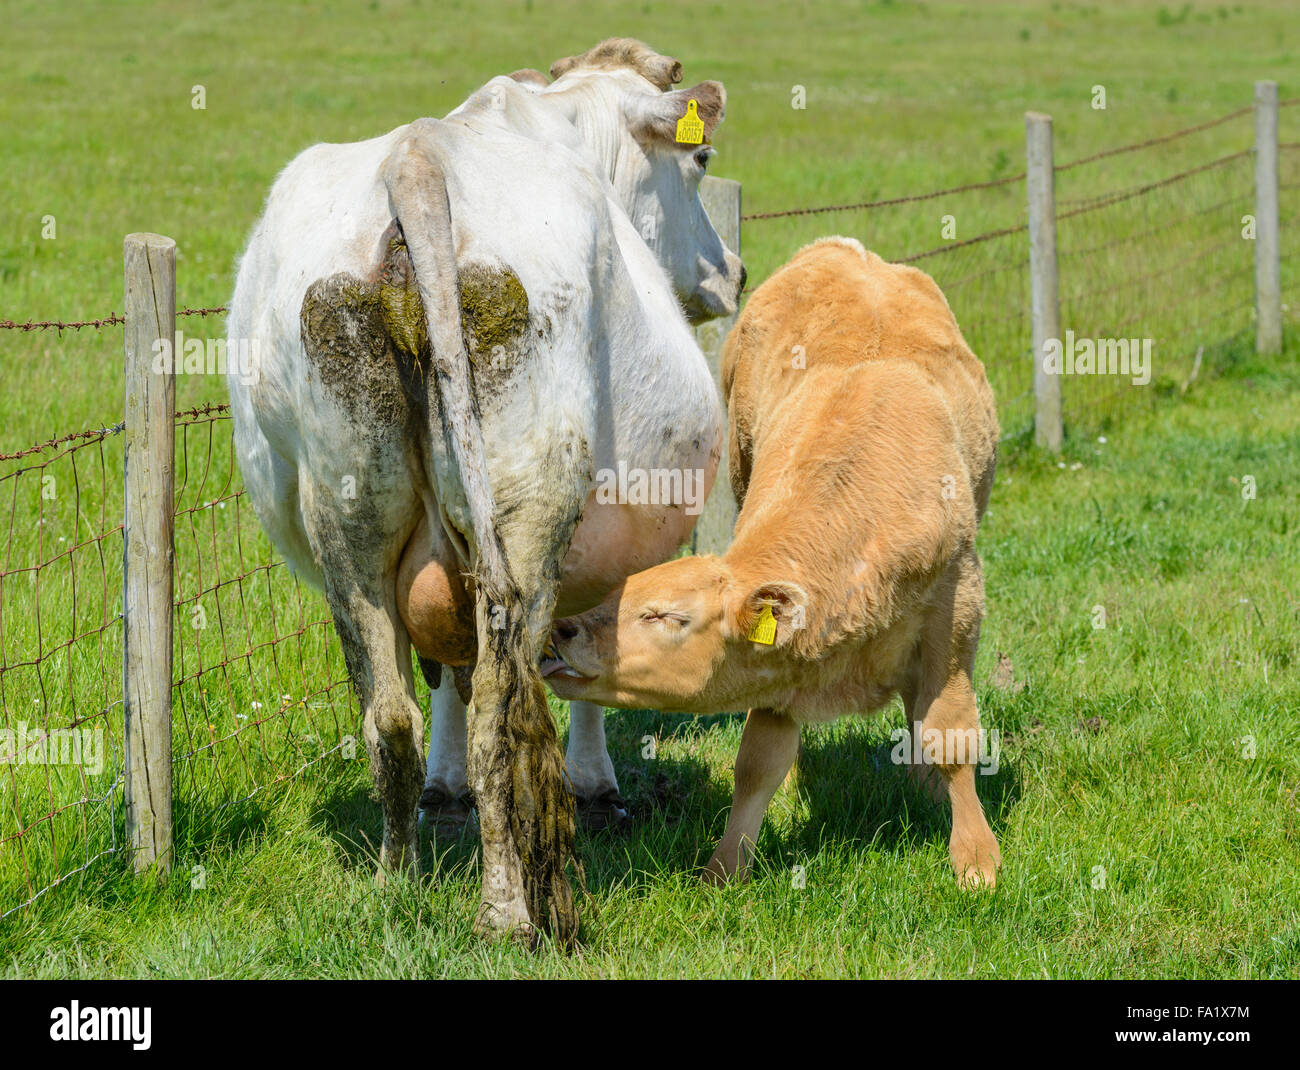 Young calf sucking from its Mother in a field by a fence. Cow feeding. - Stock Image